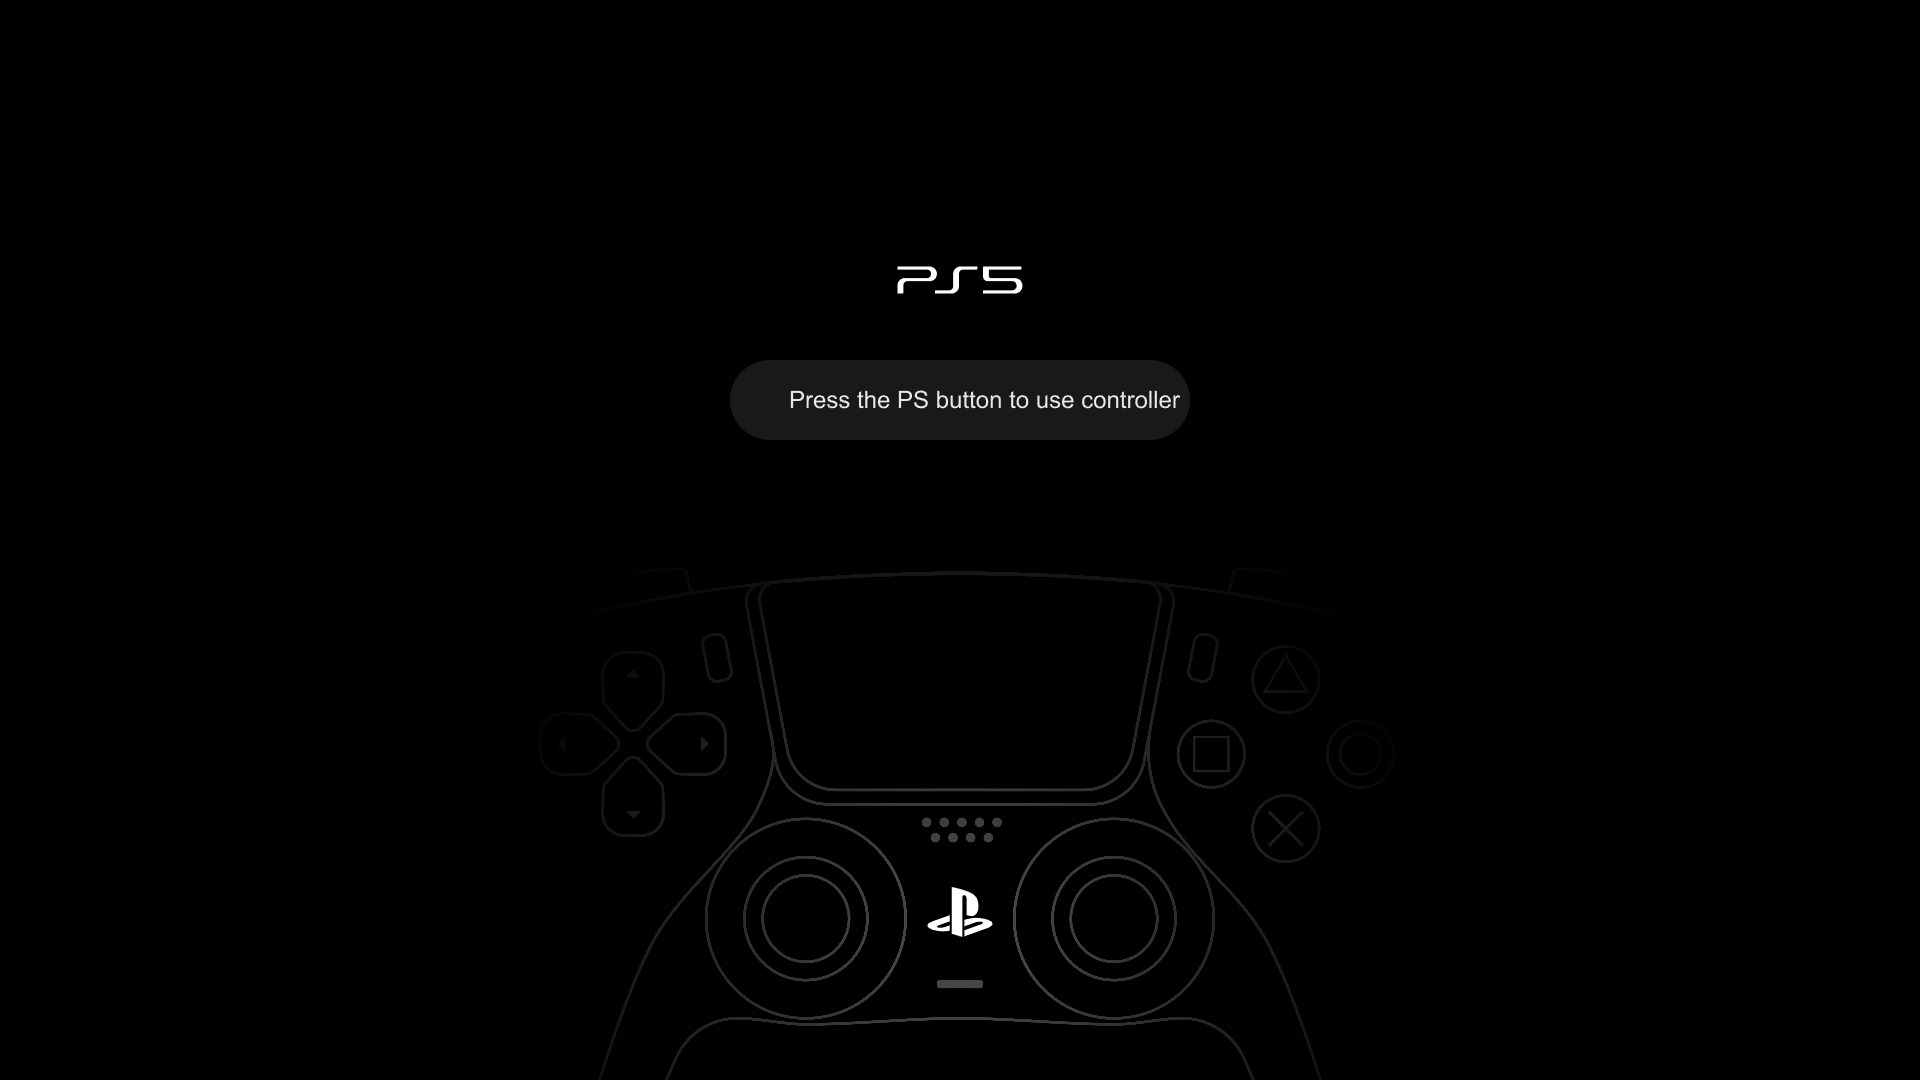 PlayStation 5 Concept UI for InVision Studio - I guess we're all excited about the PlayStation 5 launching later this year! I took a stab at what the dashboard could look like based on my personal preference. For this prototype, I was looking at fast rich transitions that are not in the way of the user.